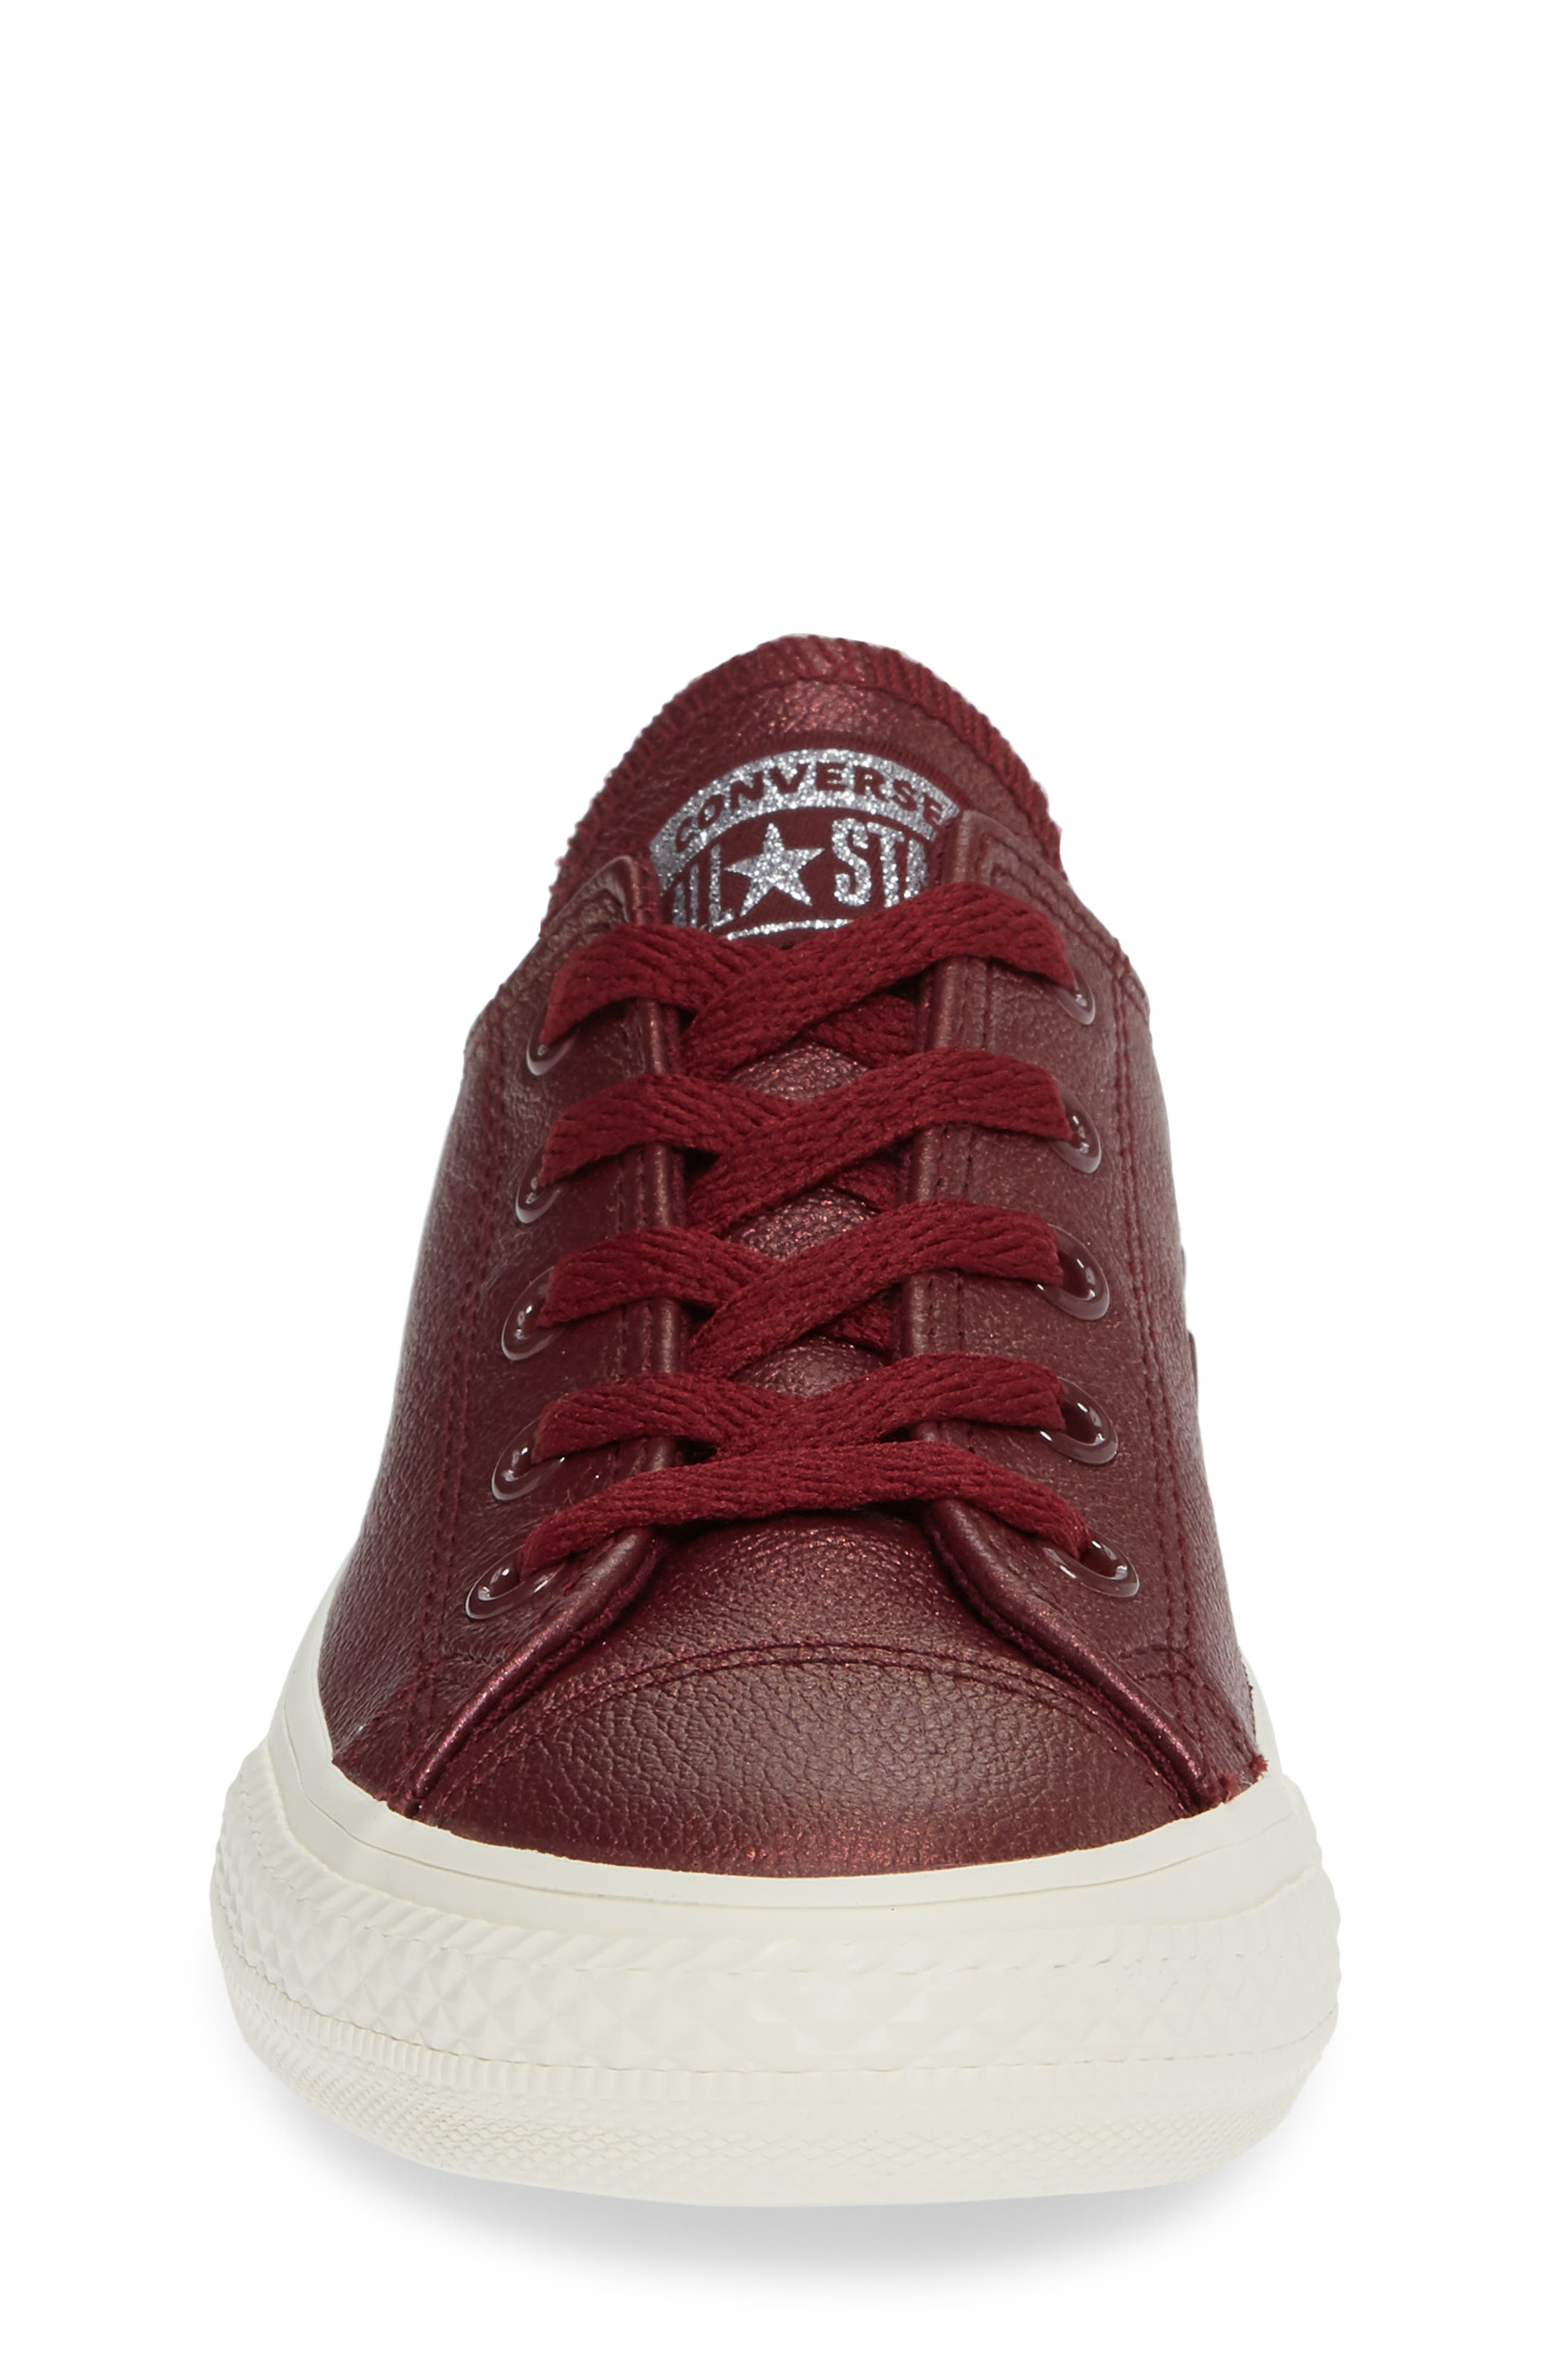 Chuck Taylor<sup>®</sup> All Star<sup>®</sup> Metallic Faux Leather Ox Sneaker,                             Alternate thumbnail 5, color,                             Dark Burgundy